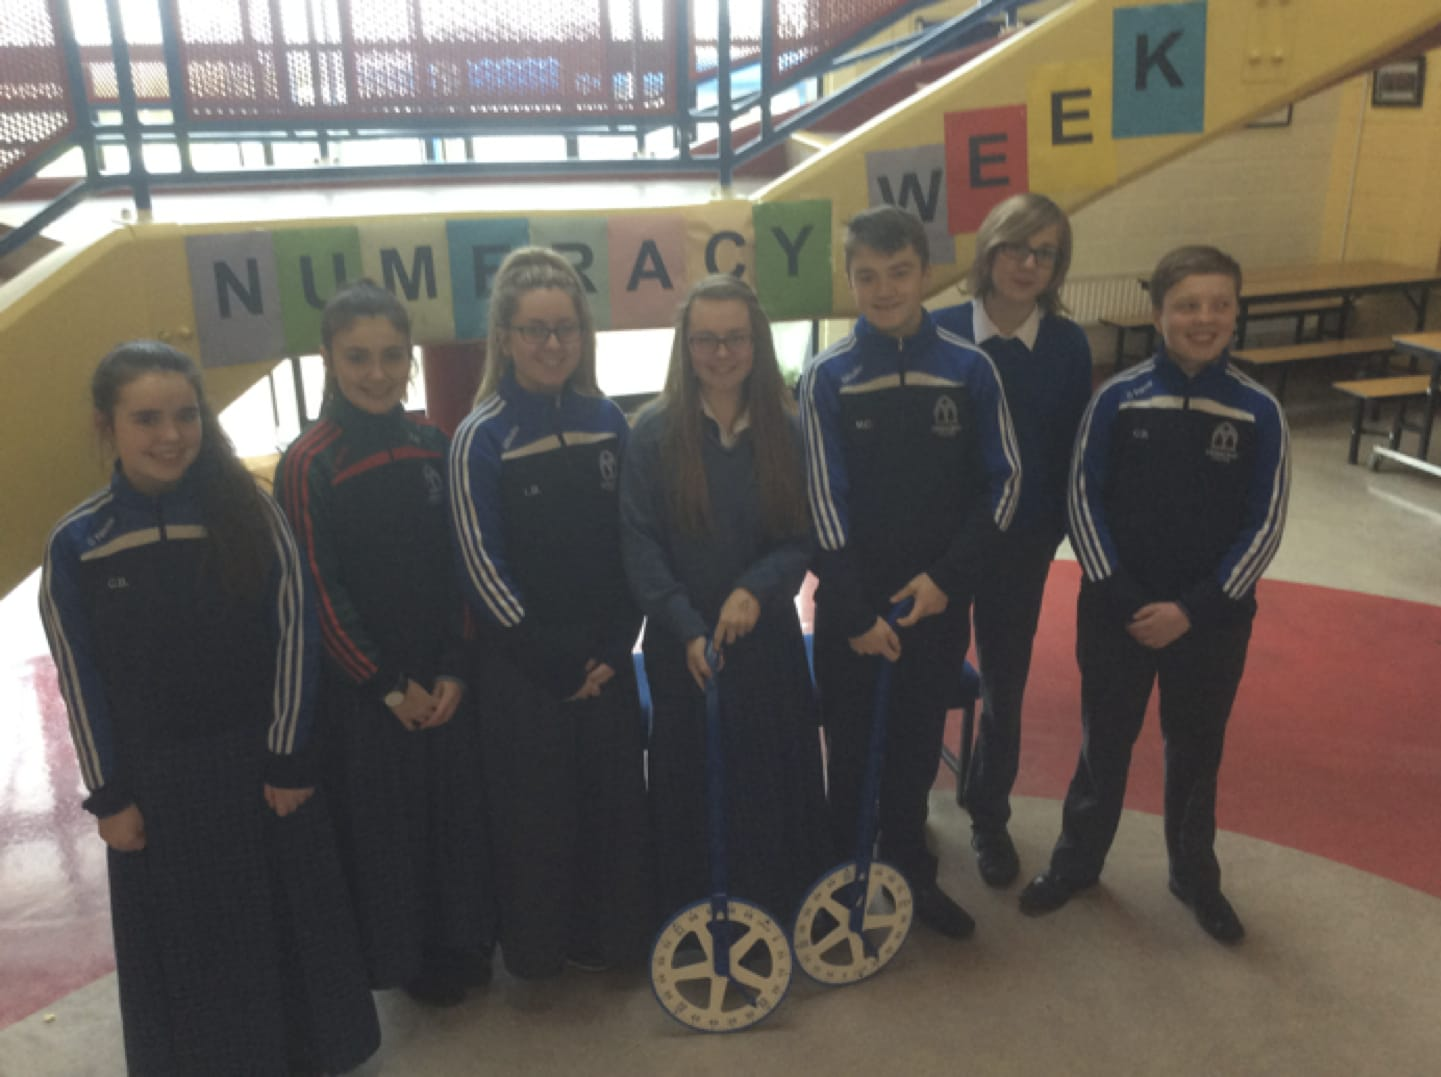 January 2017: The Student Council launched the beginning of the Numeracy Week in Desmond College Post Primary School